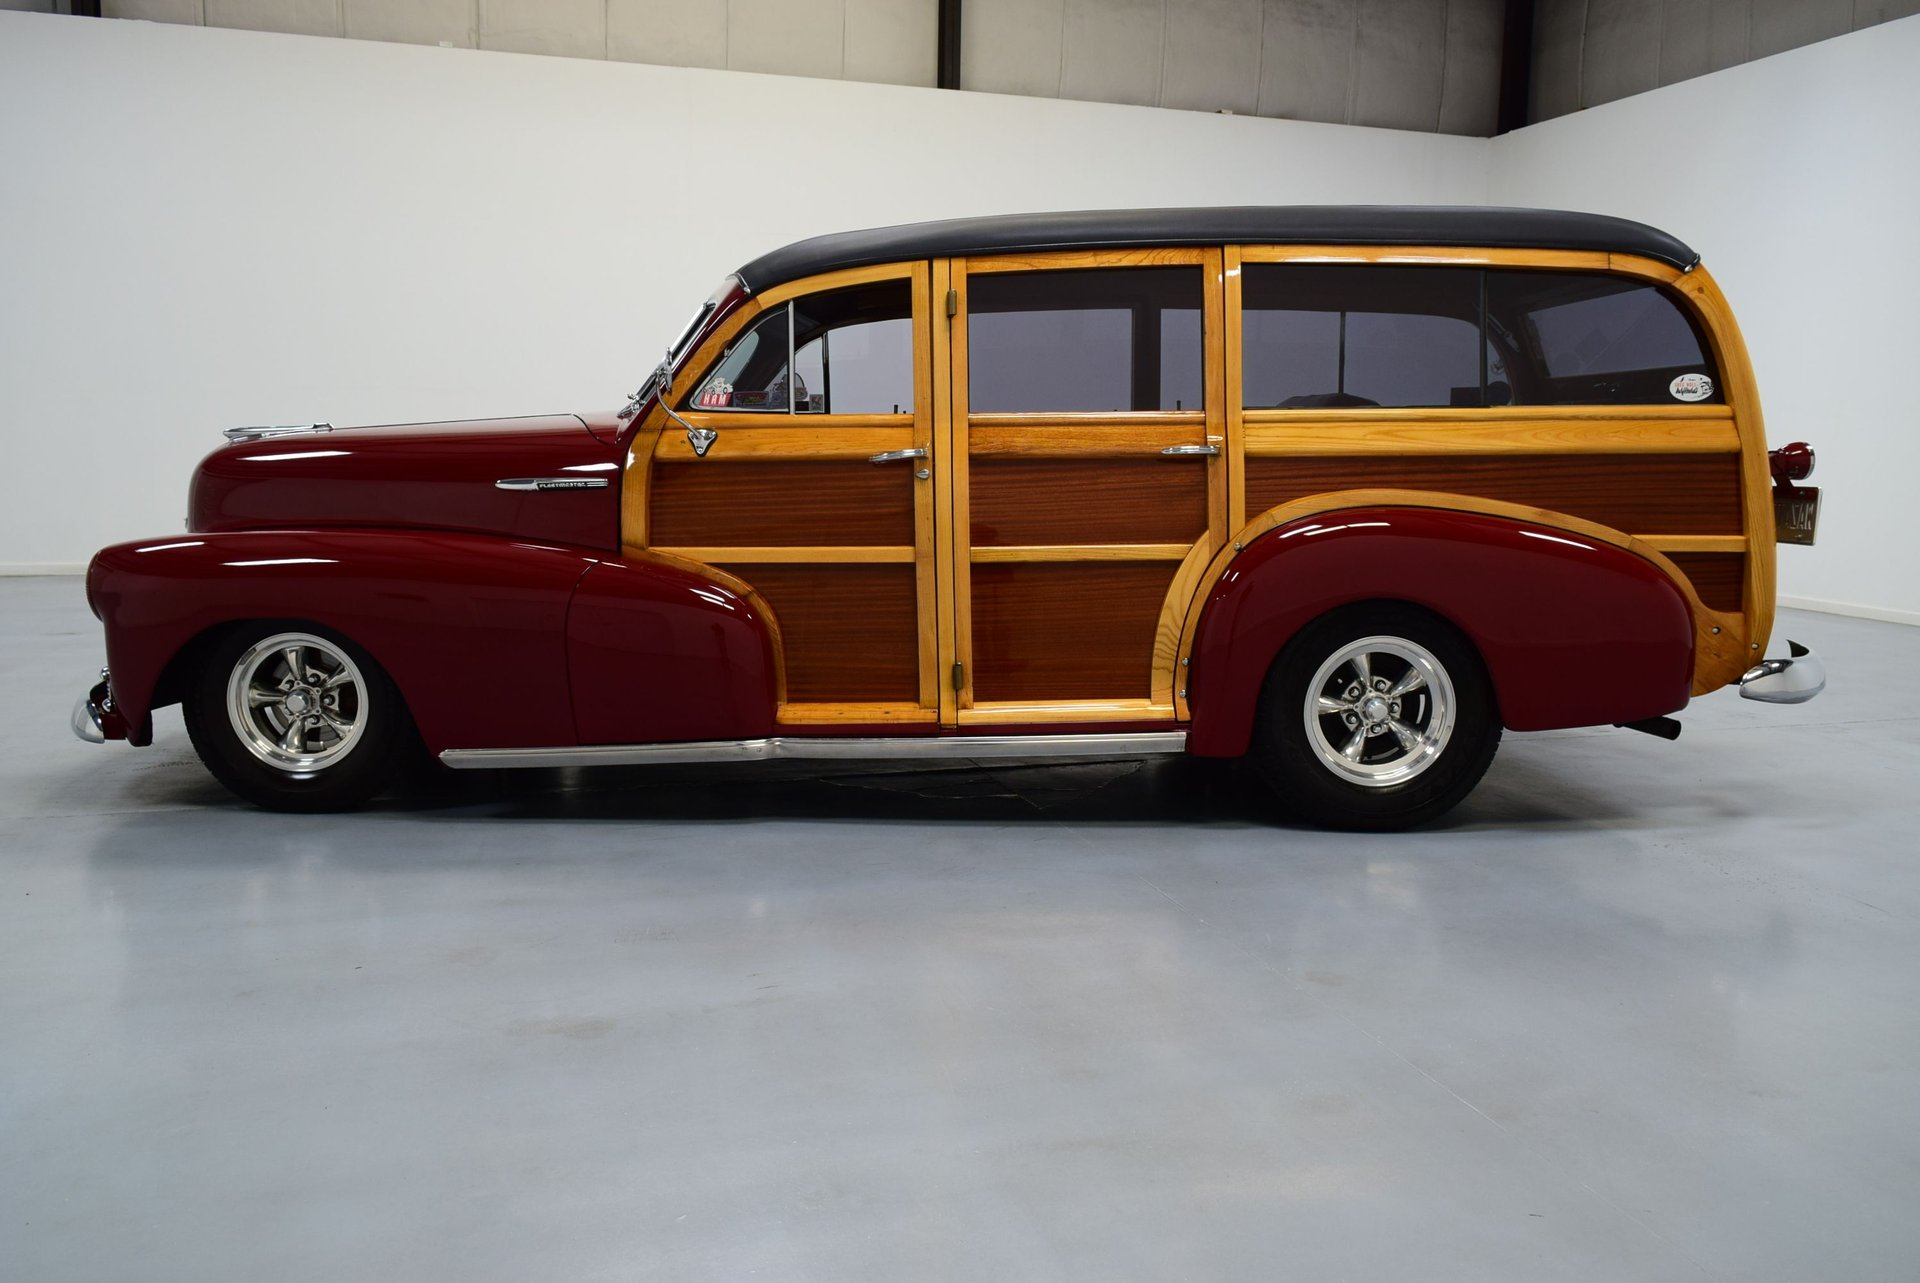 1948 chevrolet woody station wagon